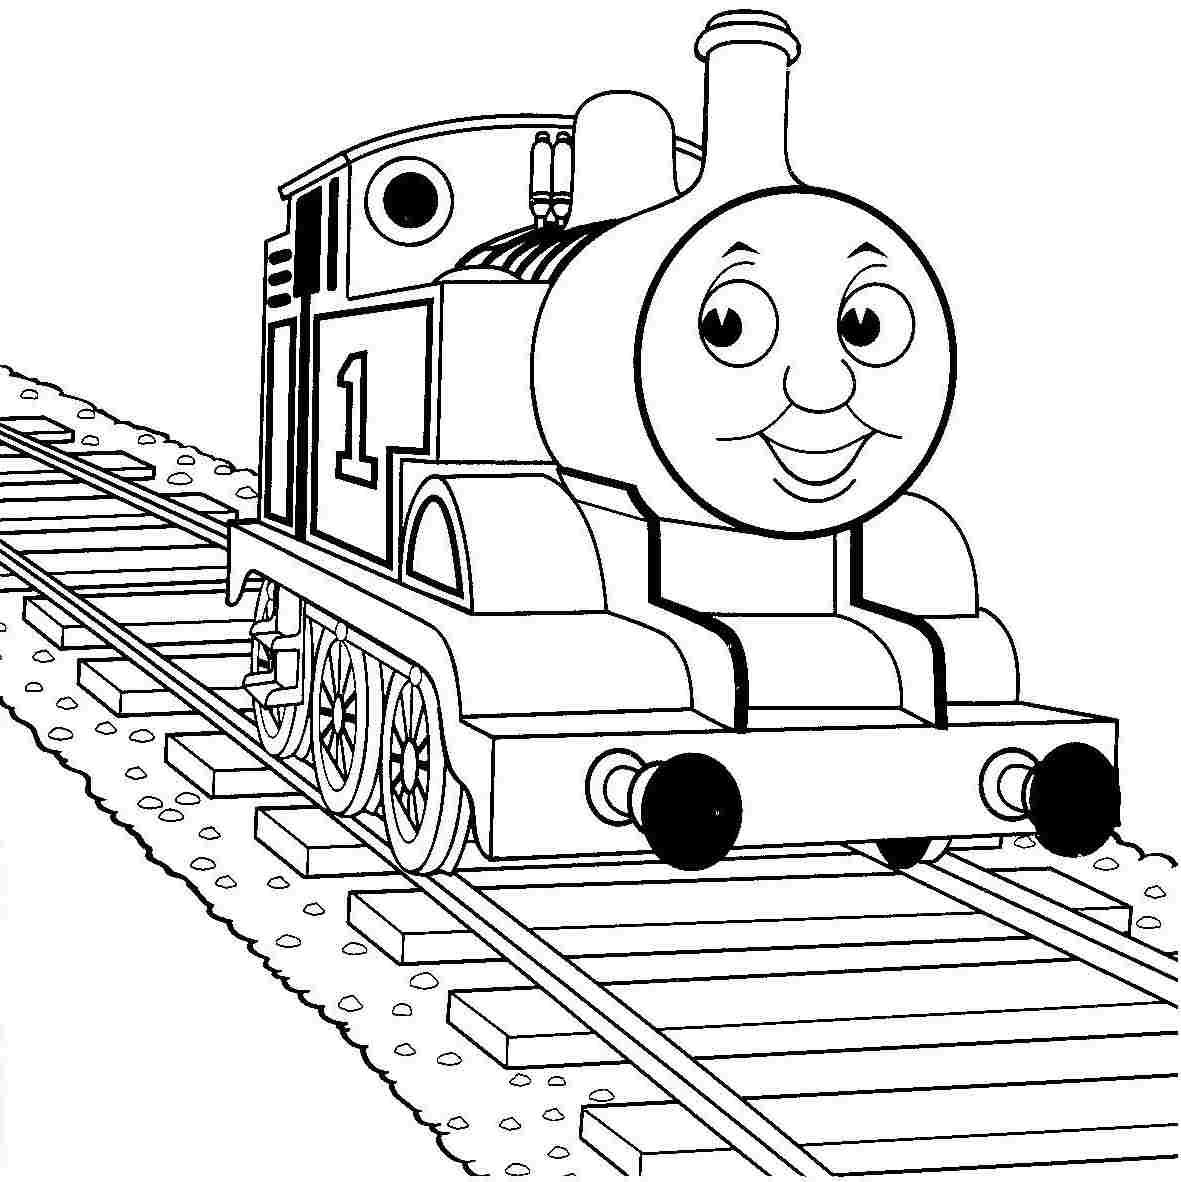 Thomas the train coloring page color periods free for Thomas the tank engine face template